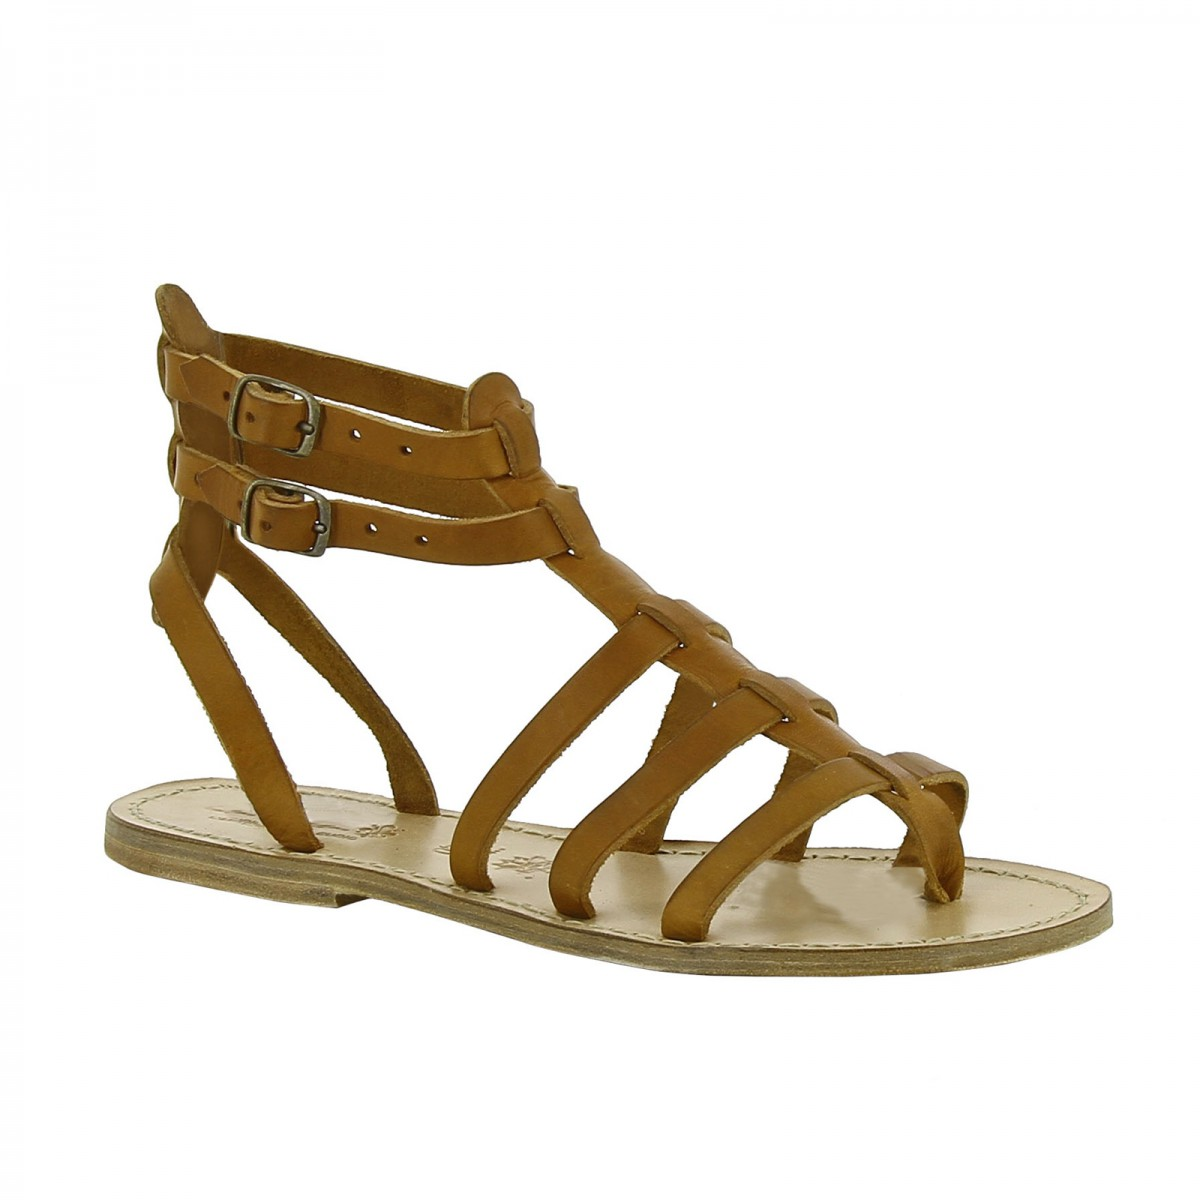 dee068ff77bc Women s flat gladiator sandals Handmade in Italy in tan leather. Loading  zoom